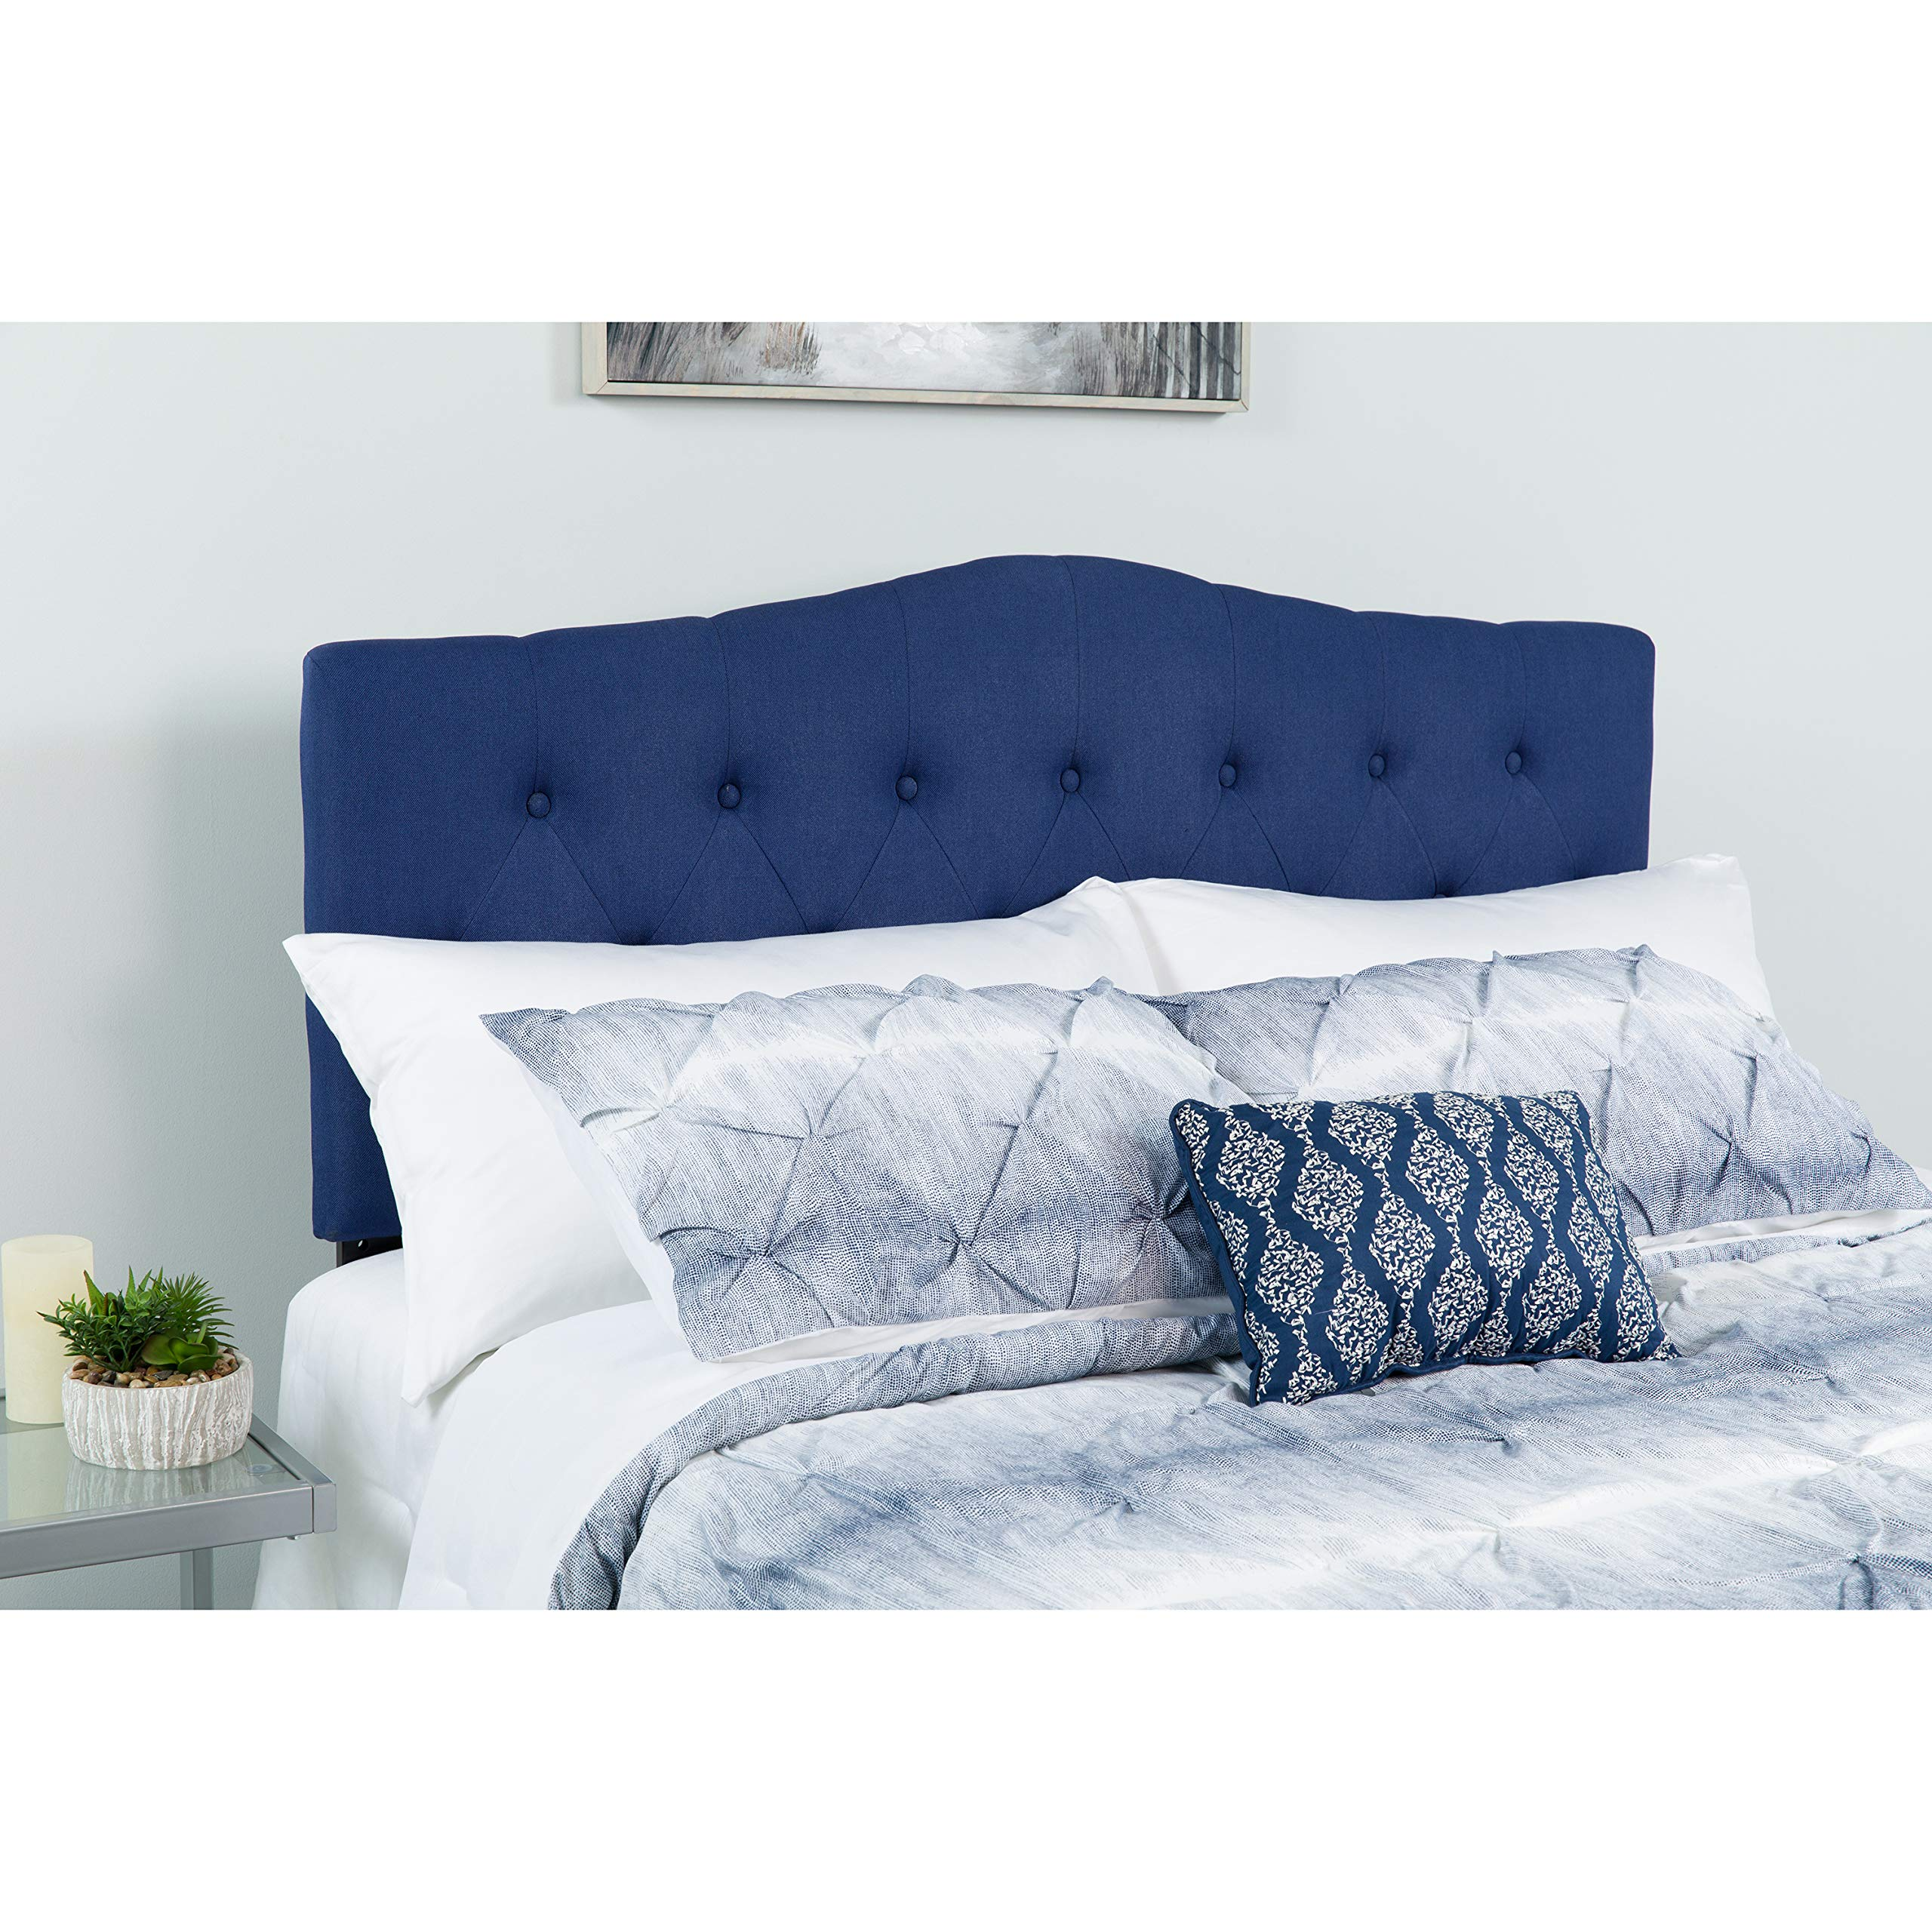 Flash Furniture Cambridge Tufted Upholstered Full Size Headboard in Navy Fabric